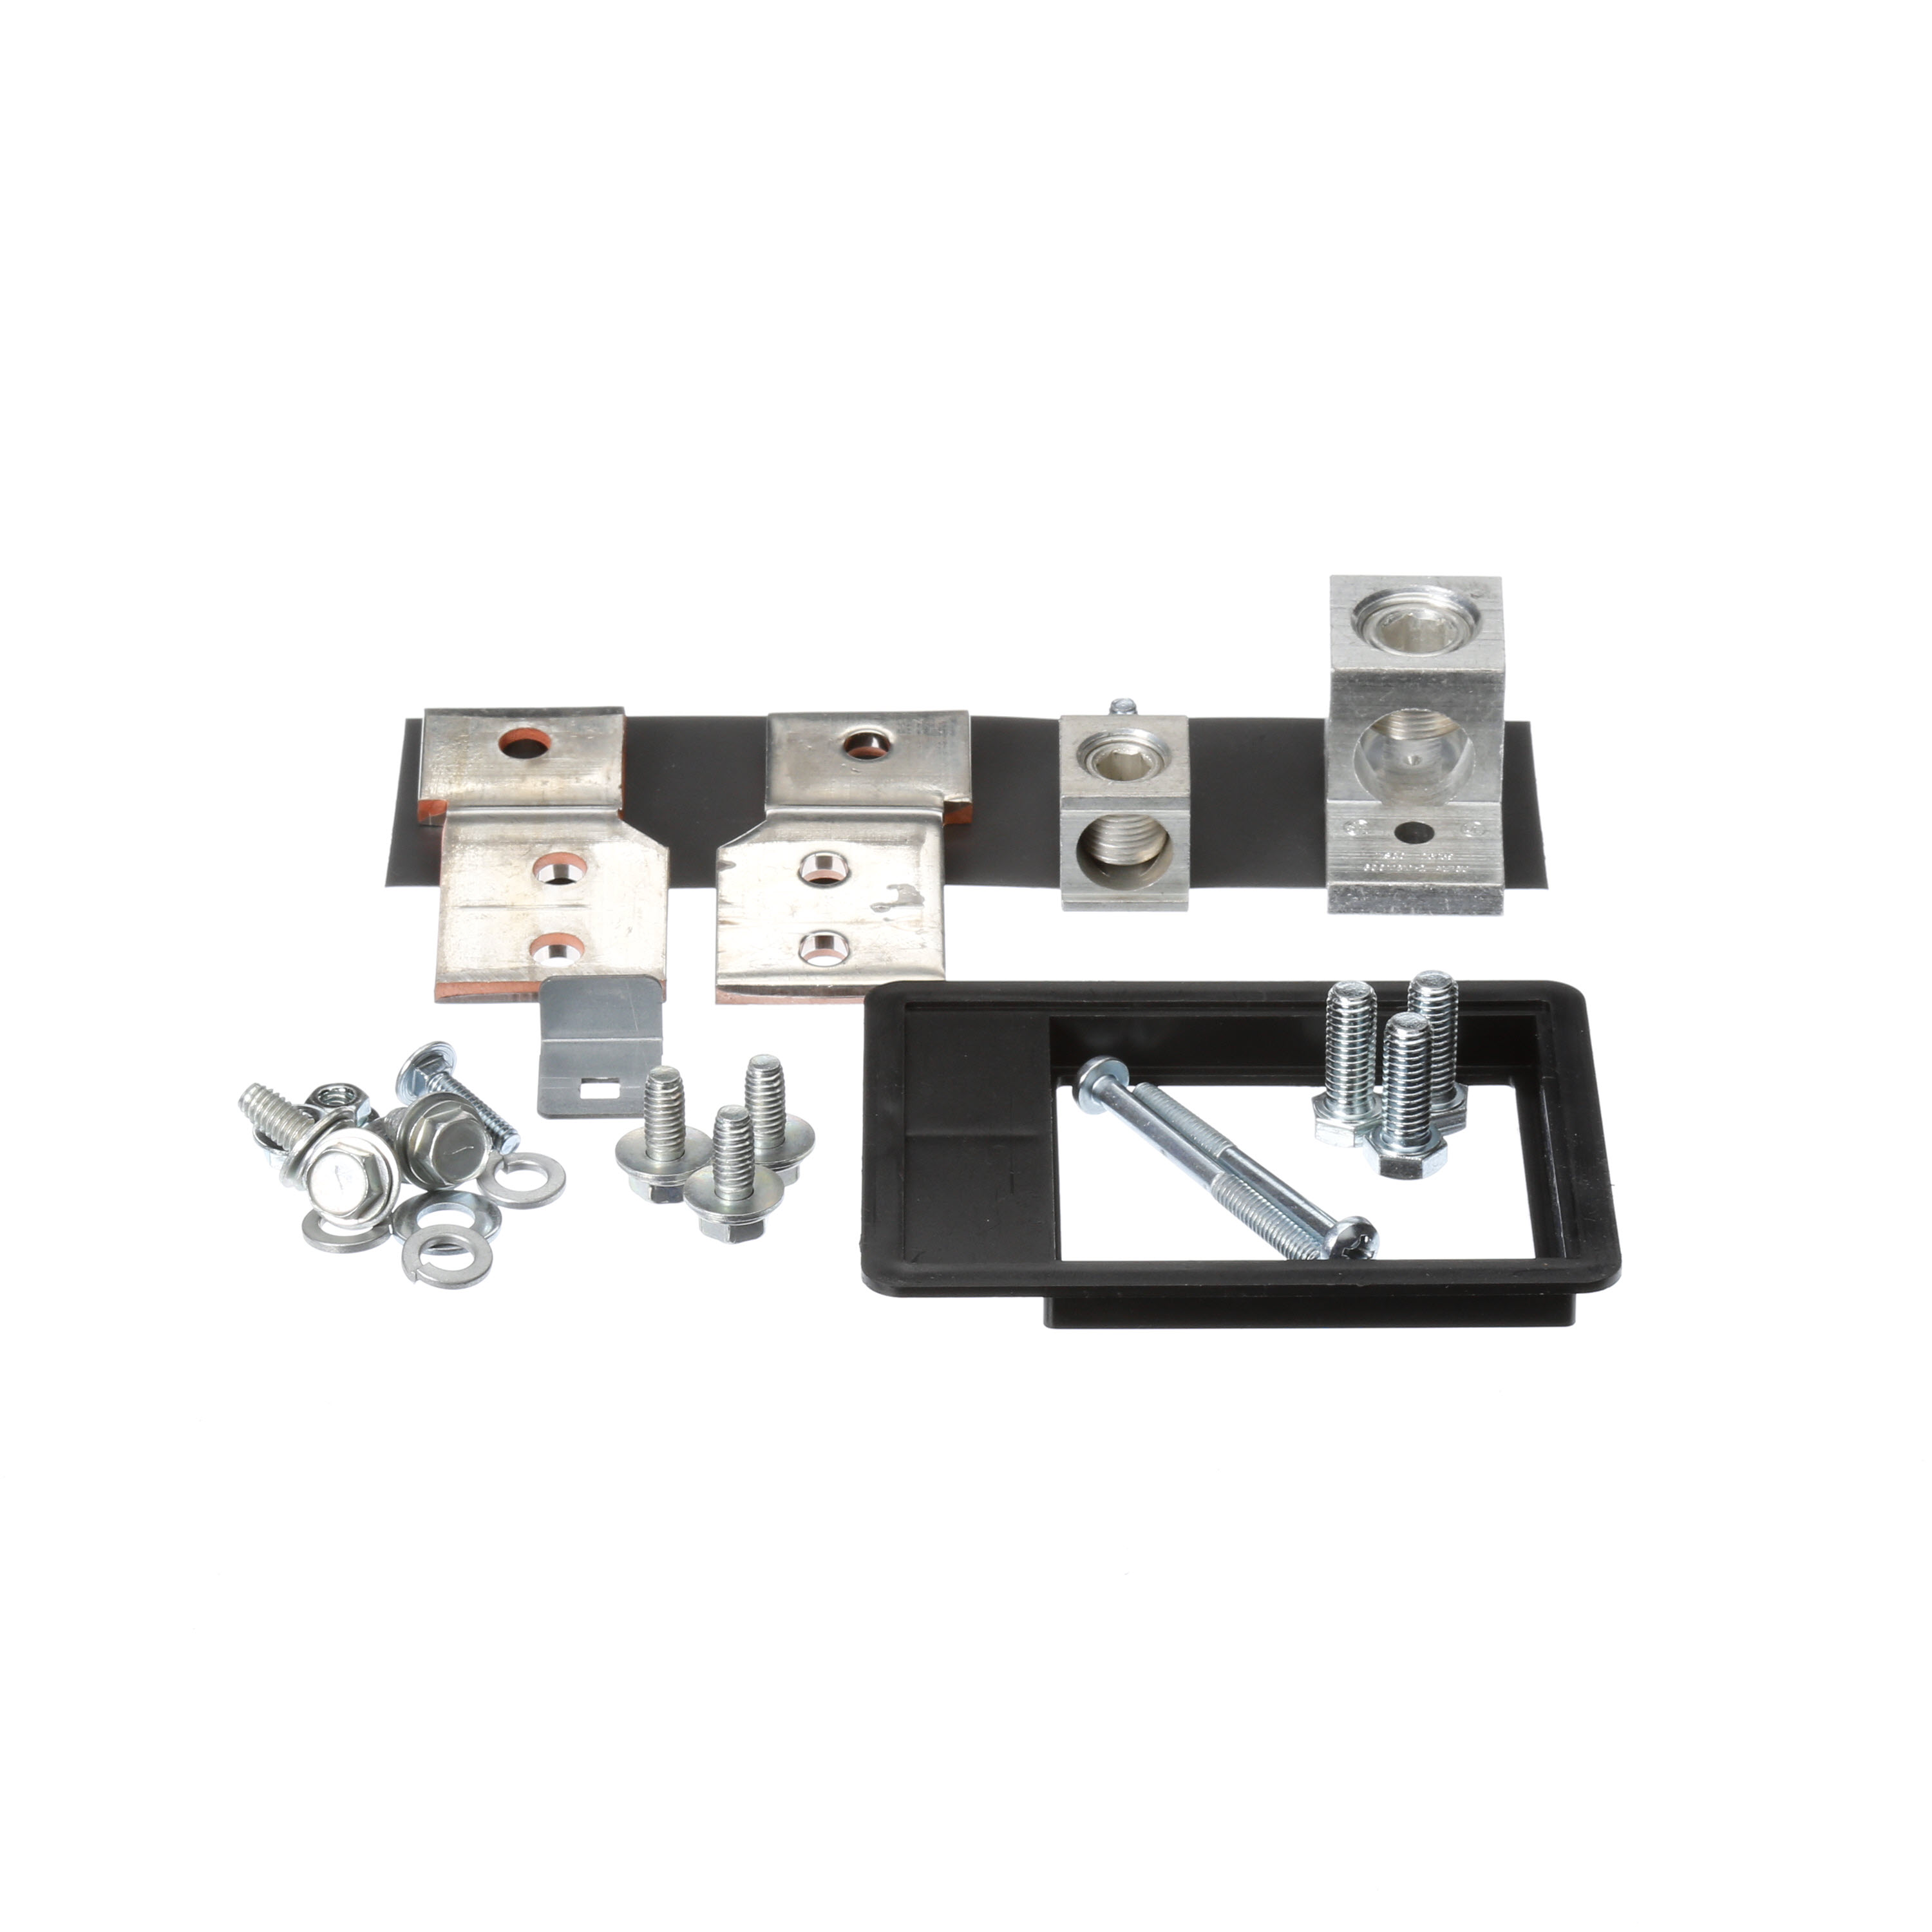 Siemens,MBKJD1A,Breaker Mounting Kit, 1-Phase, 400A